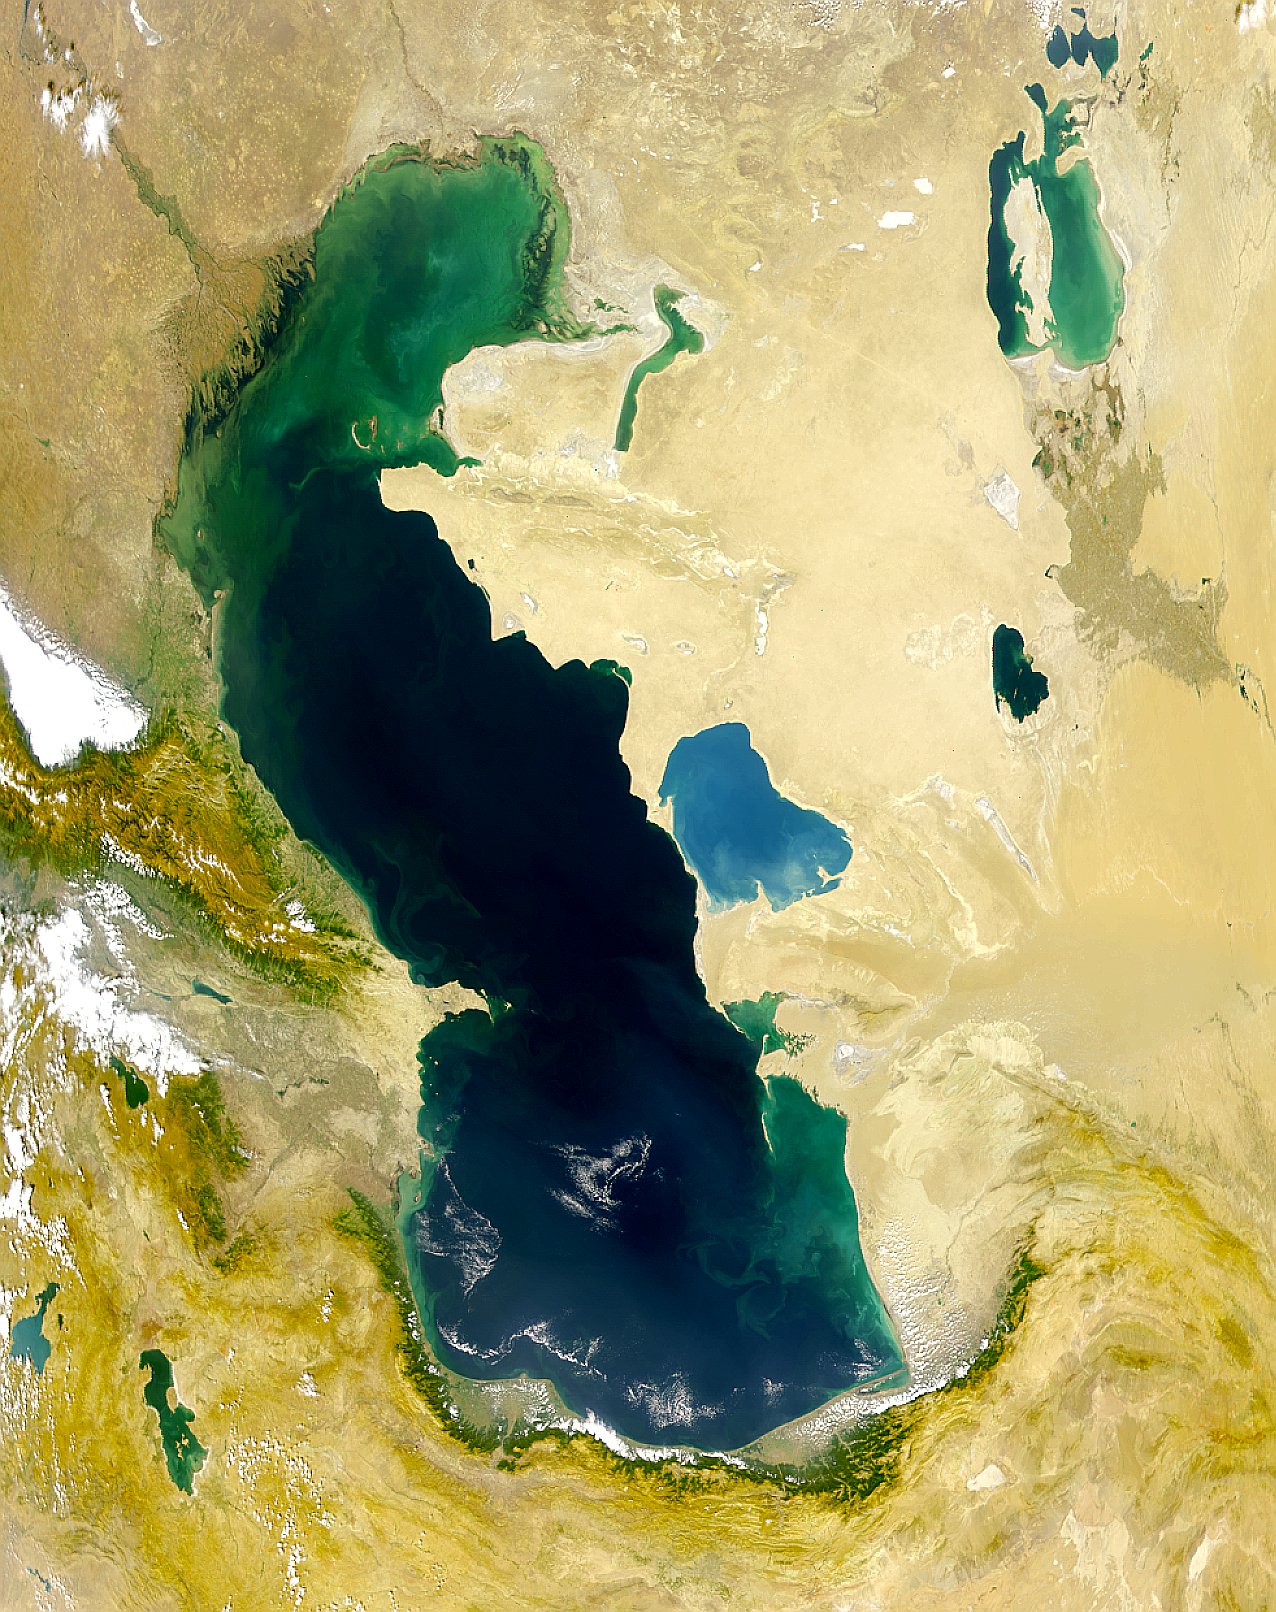 Caspian Sea - related image preview